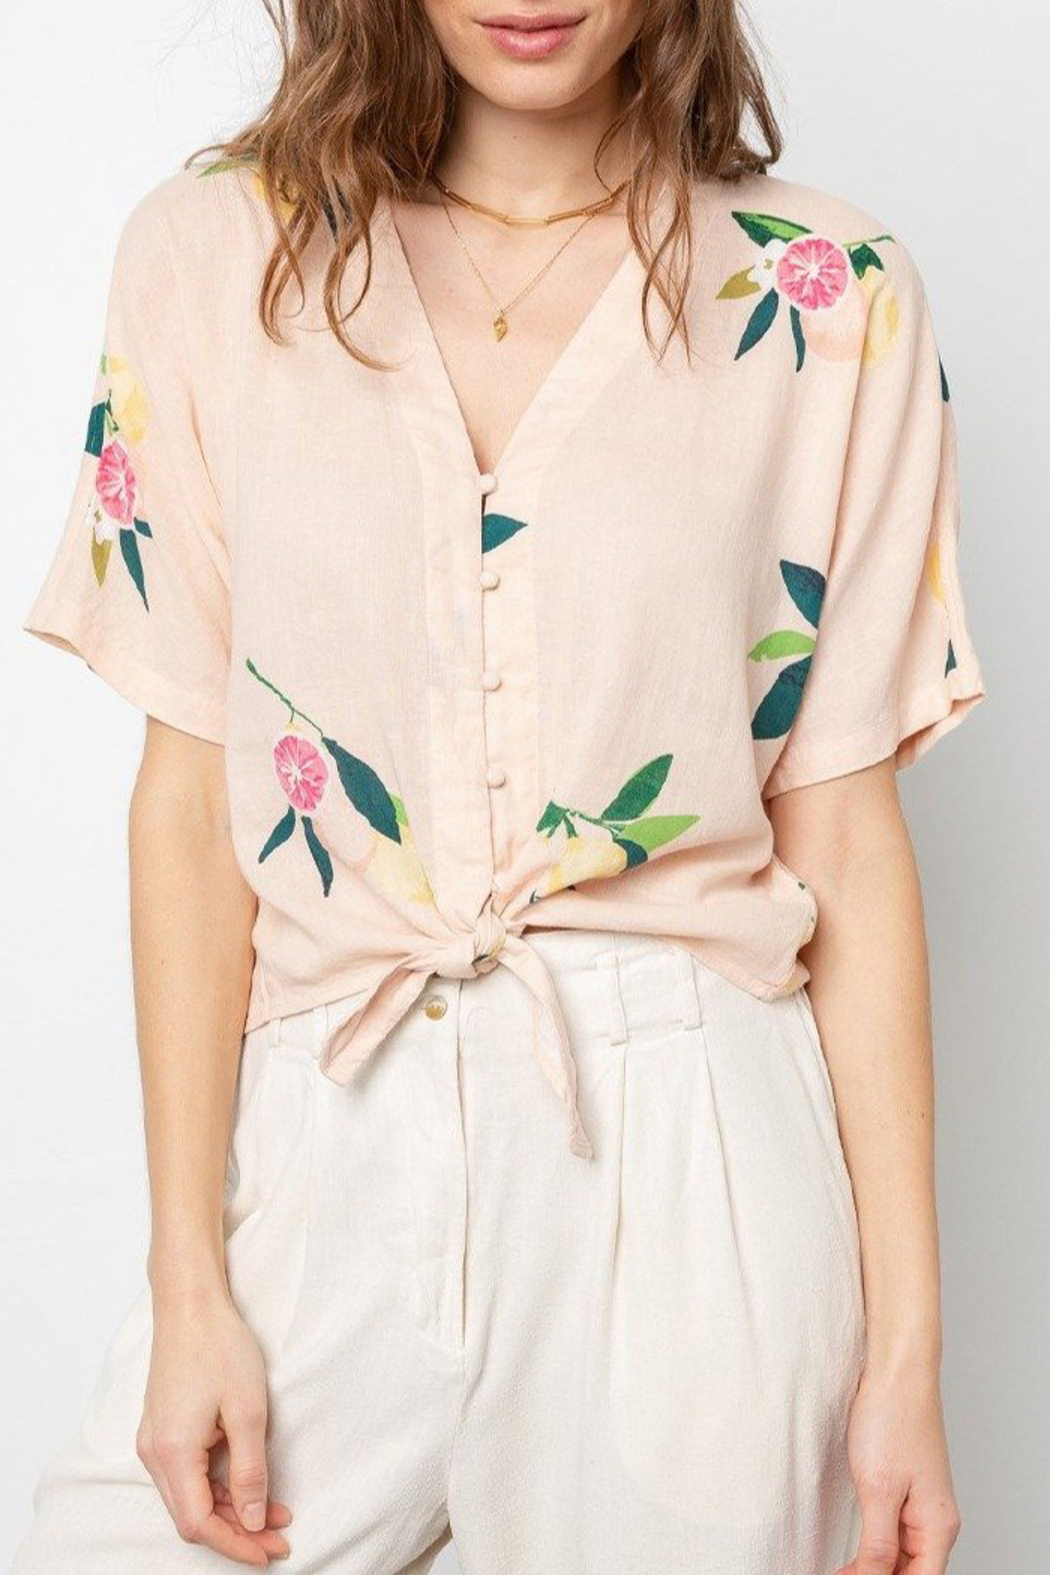 Rails Clothing RAILS TIE FRONT FLORAL TOP - Front Full Image